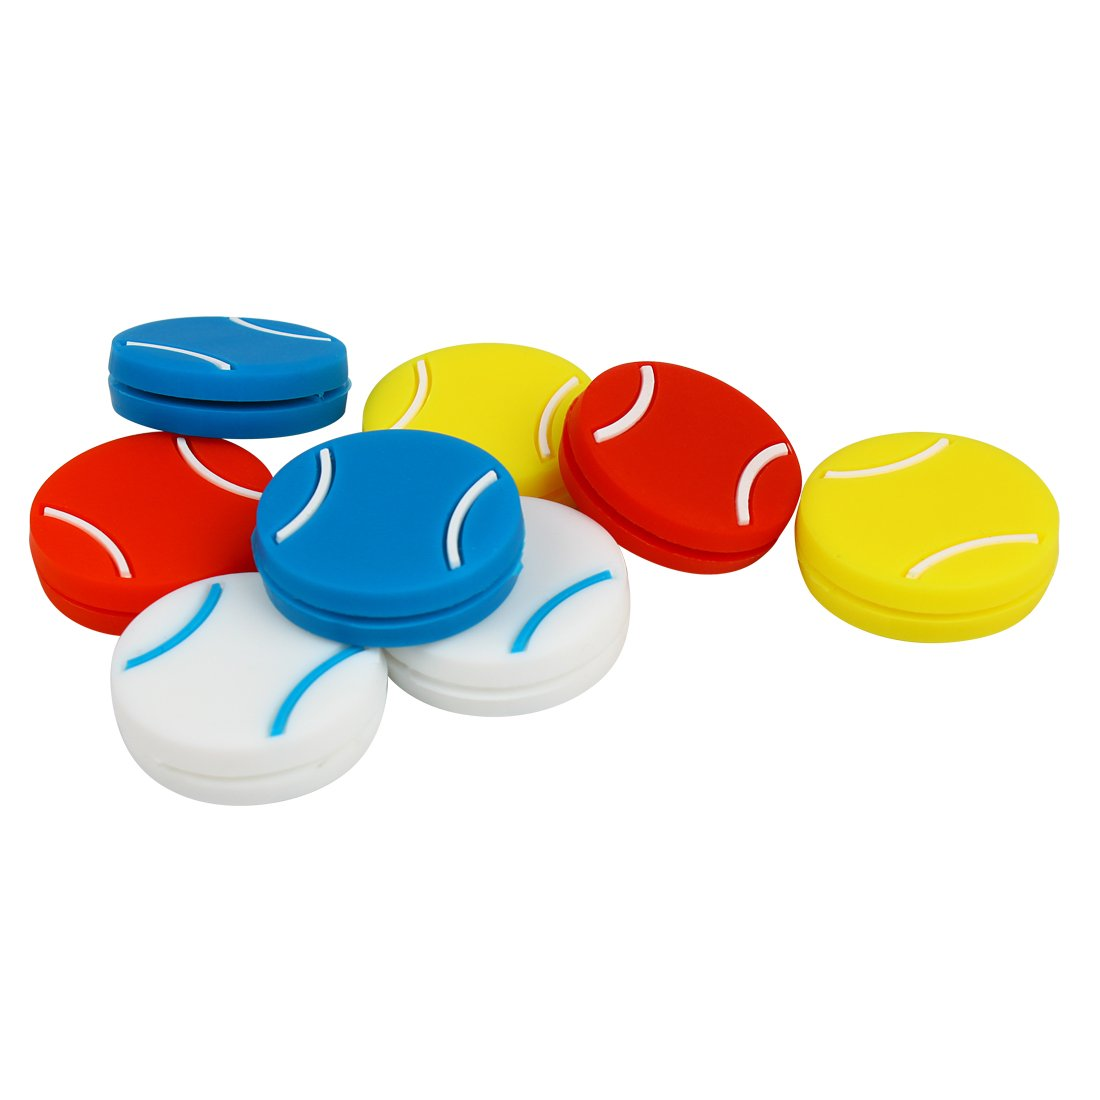 Andux Tennis Racket Vibration Dampener Silicone Shock Absorber Pack of 8 BZQ-03